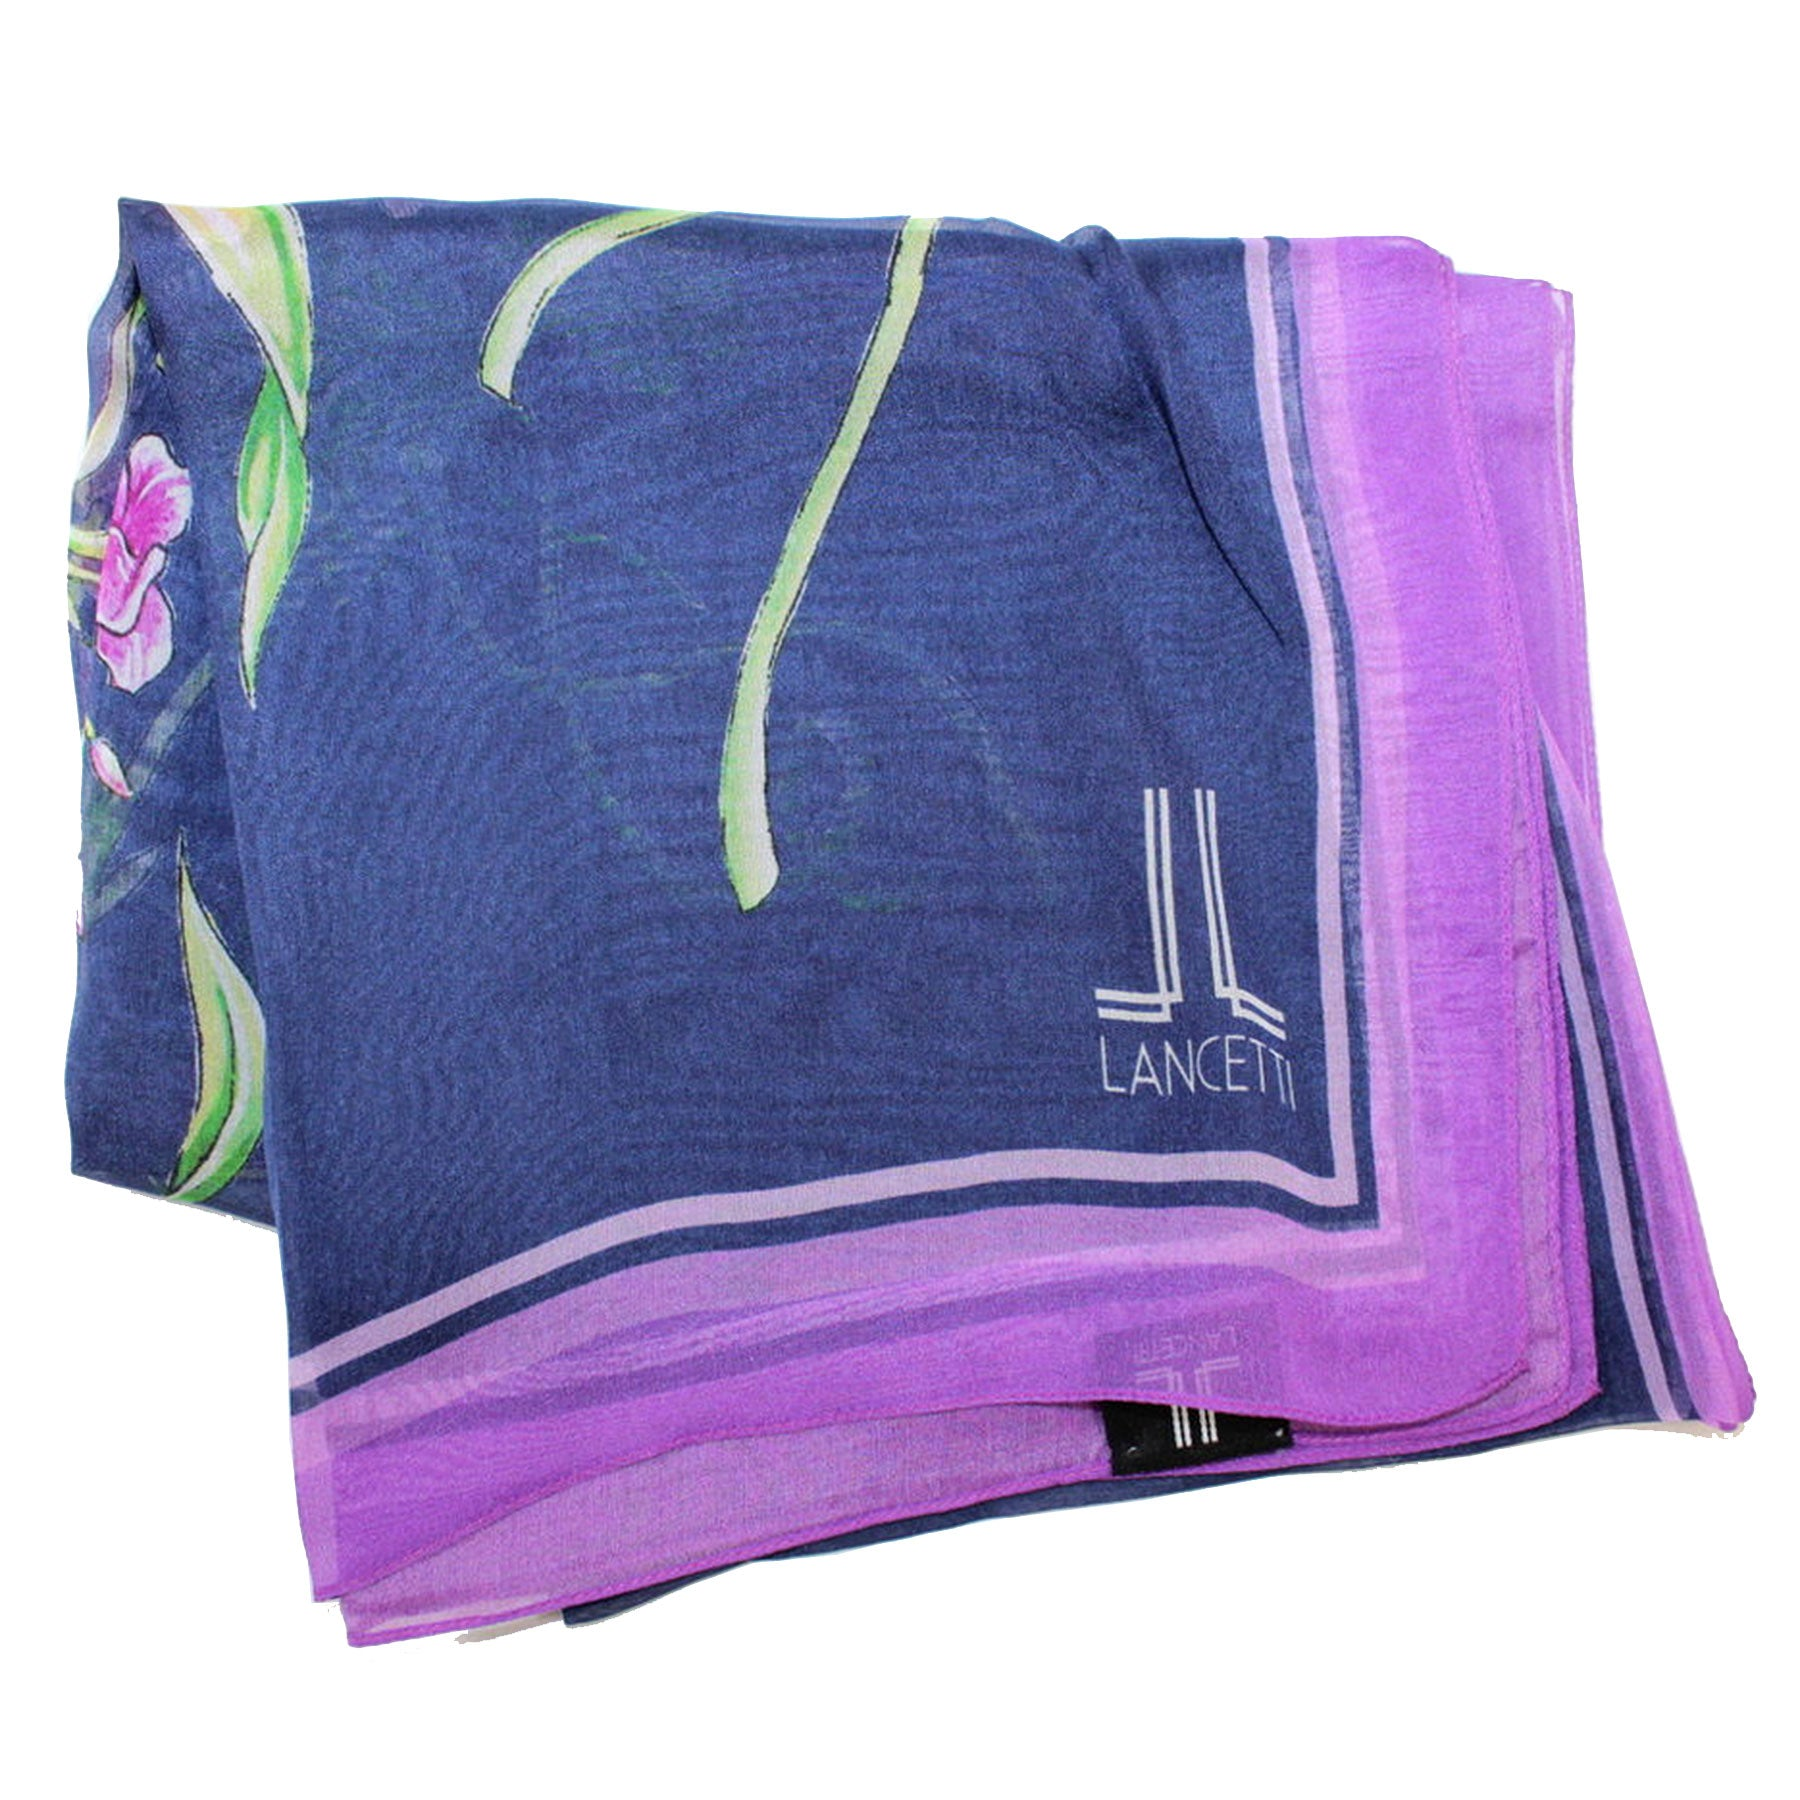 Lancetti Scarf Dark Blue Green Purple Floral - Silk Shawl Made In Italy